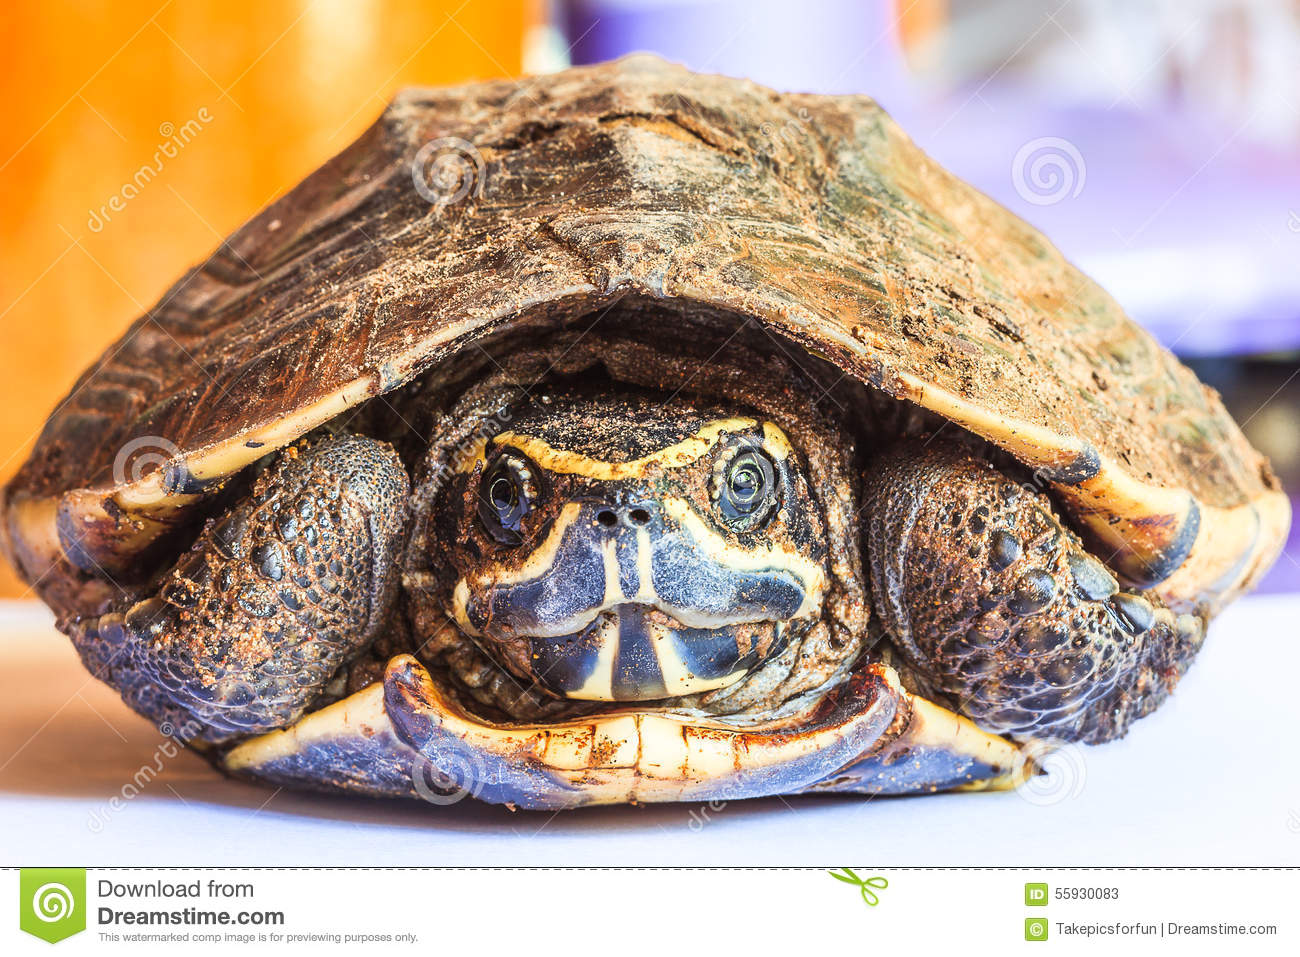 Schildpad in shell